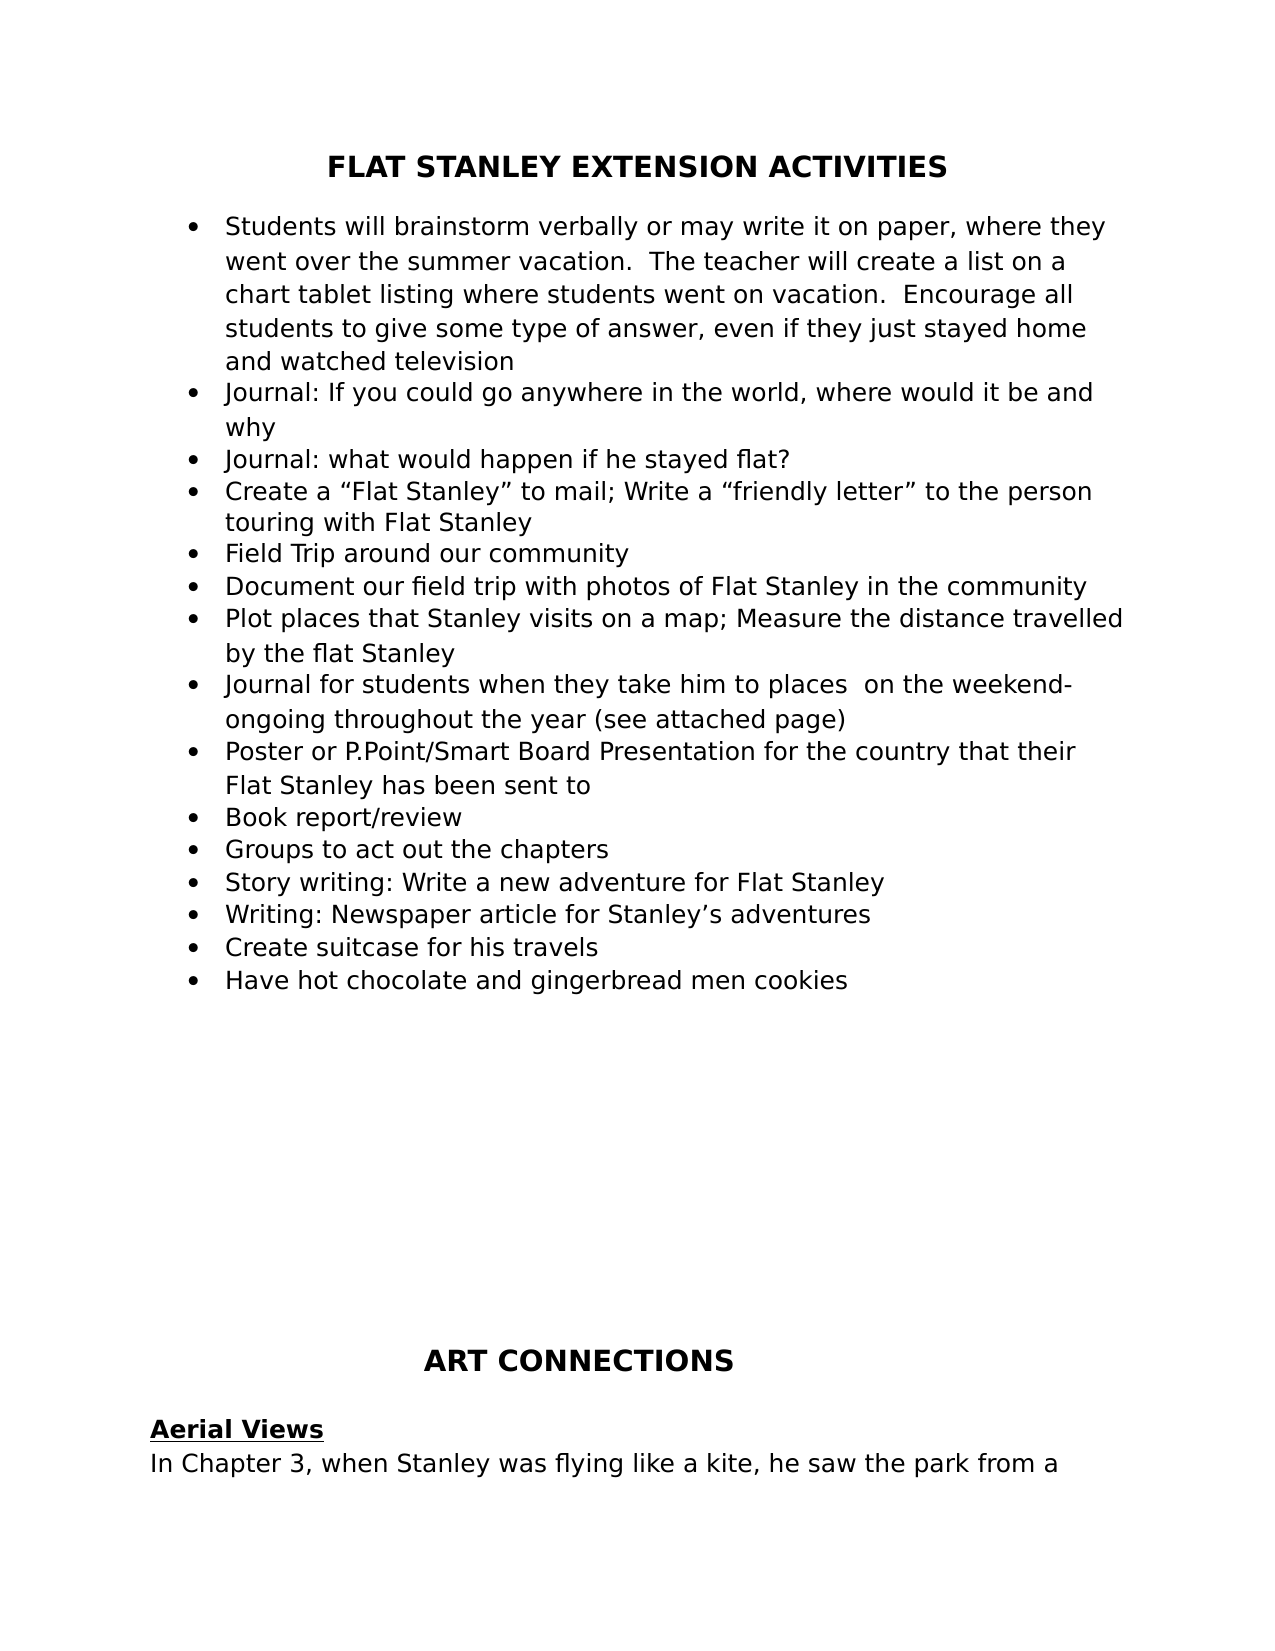 Worksheets Flat Stanley Worksheets flat stanley activities resource preview school preview